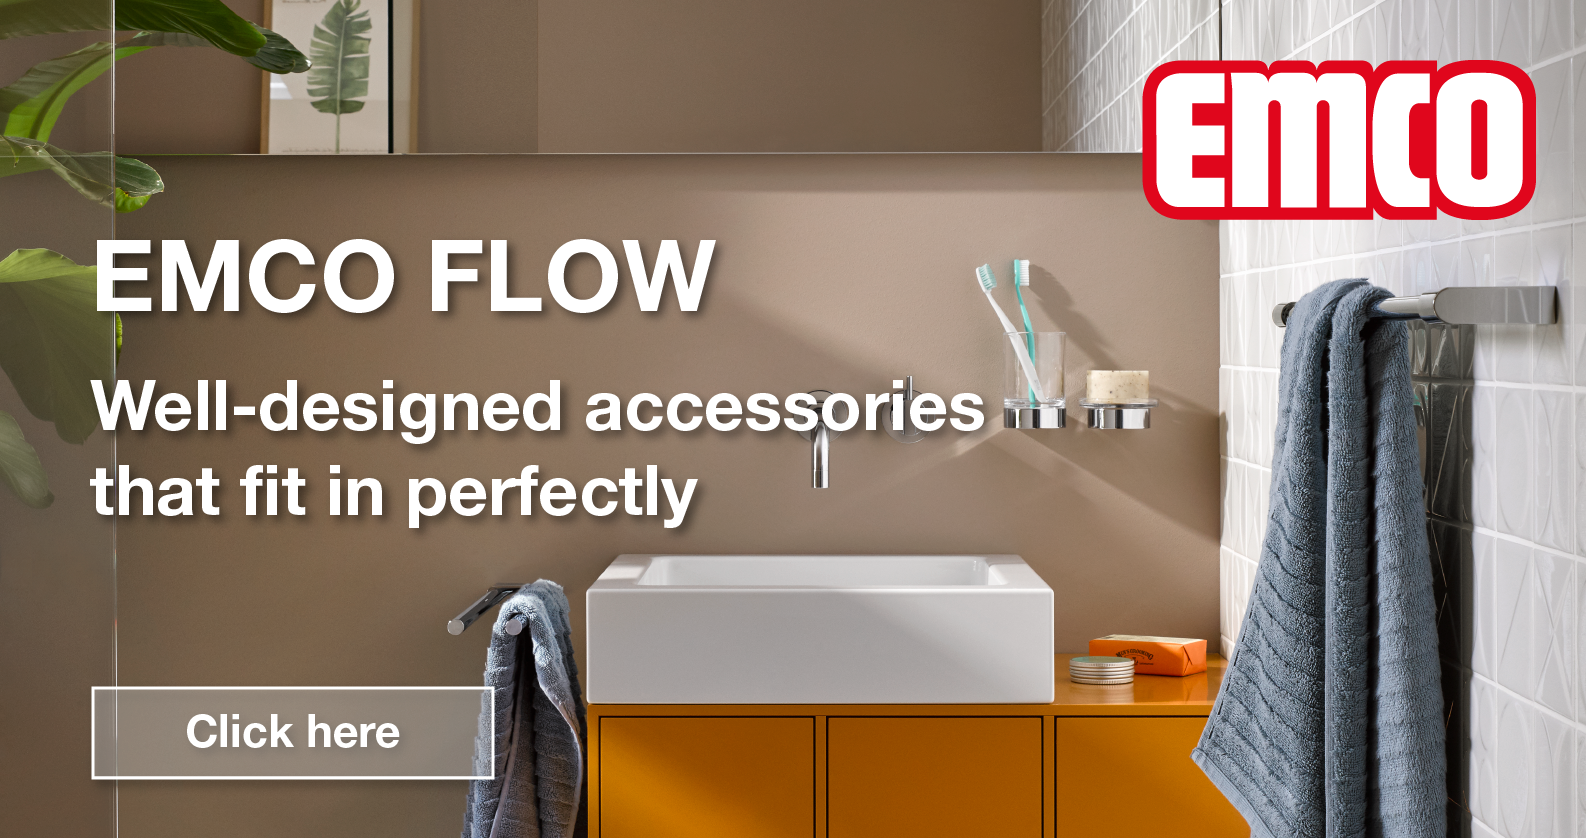 EMCO Flow Accessories at xTWOstore